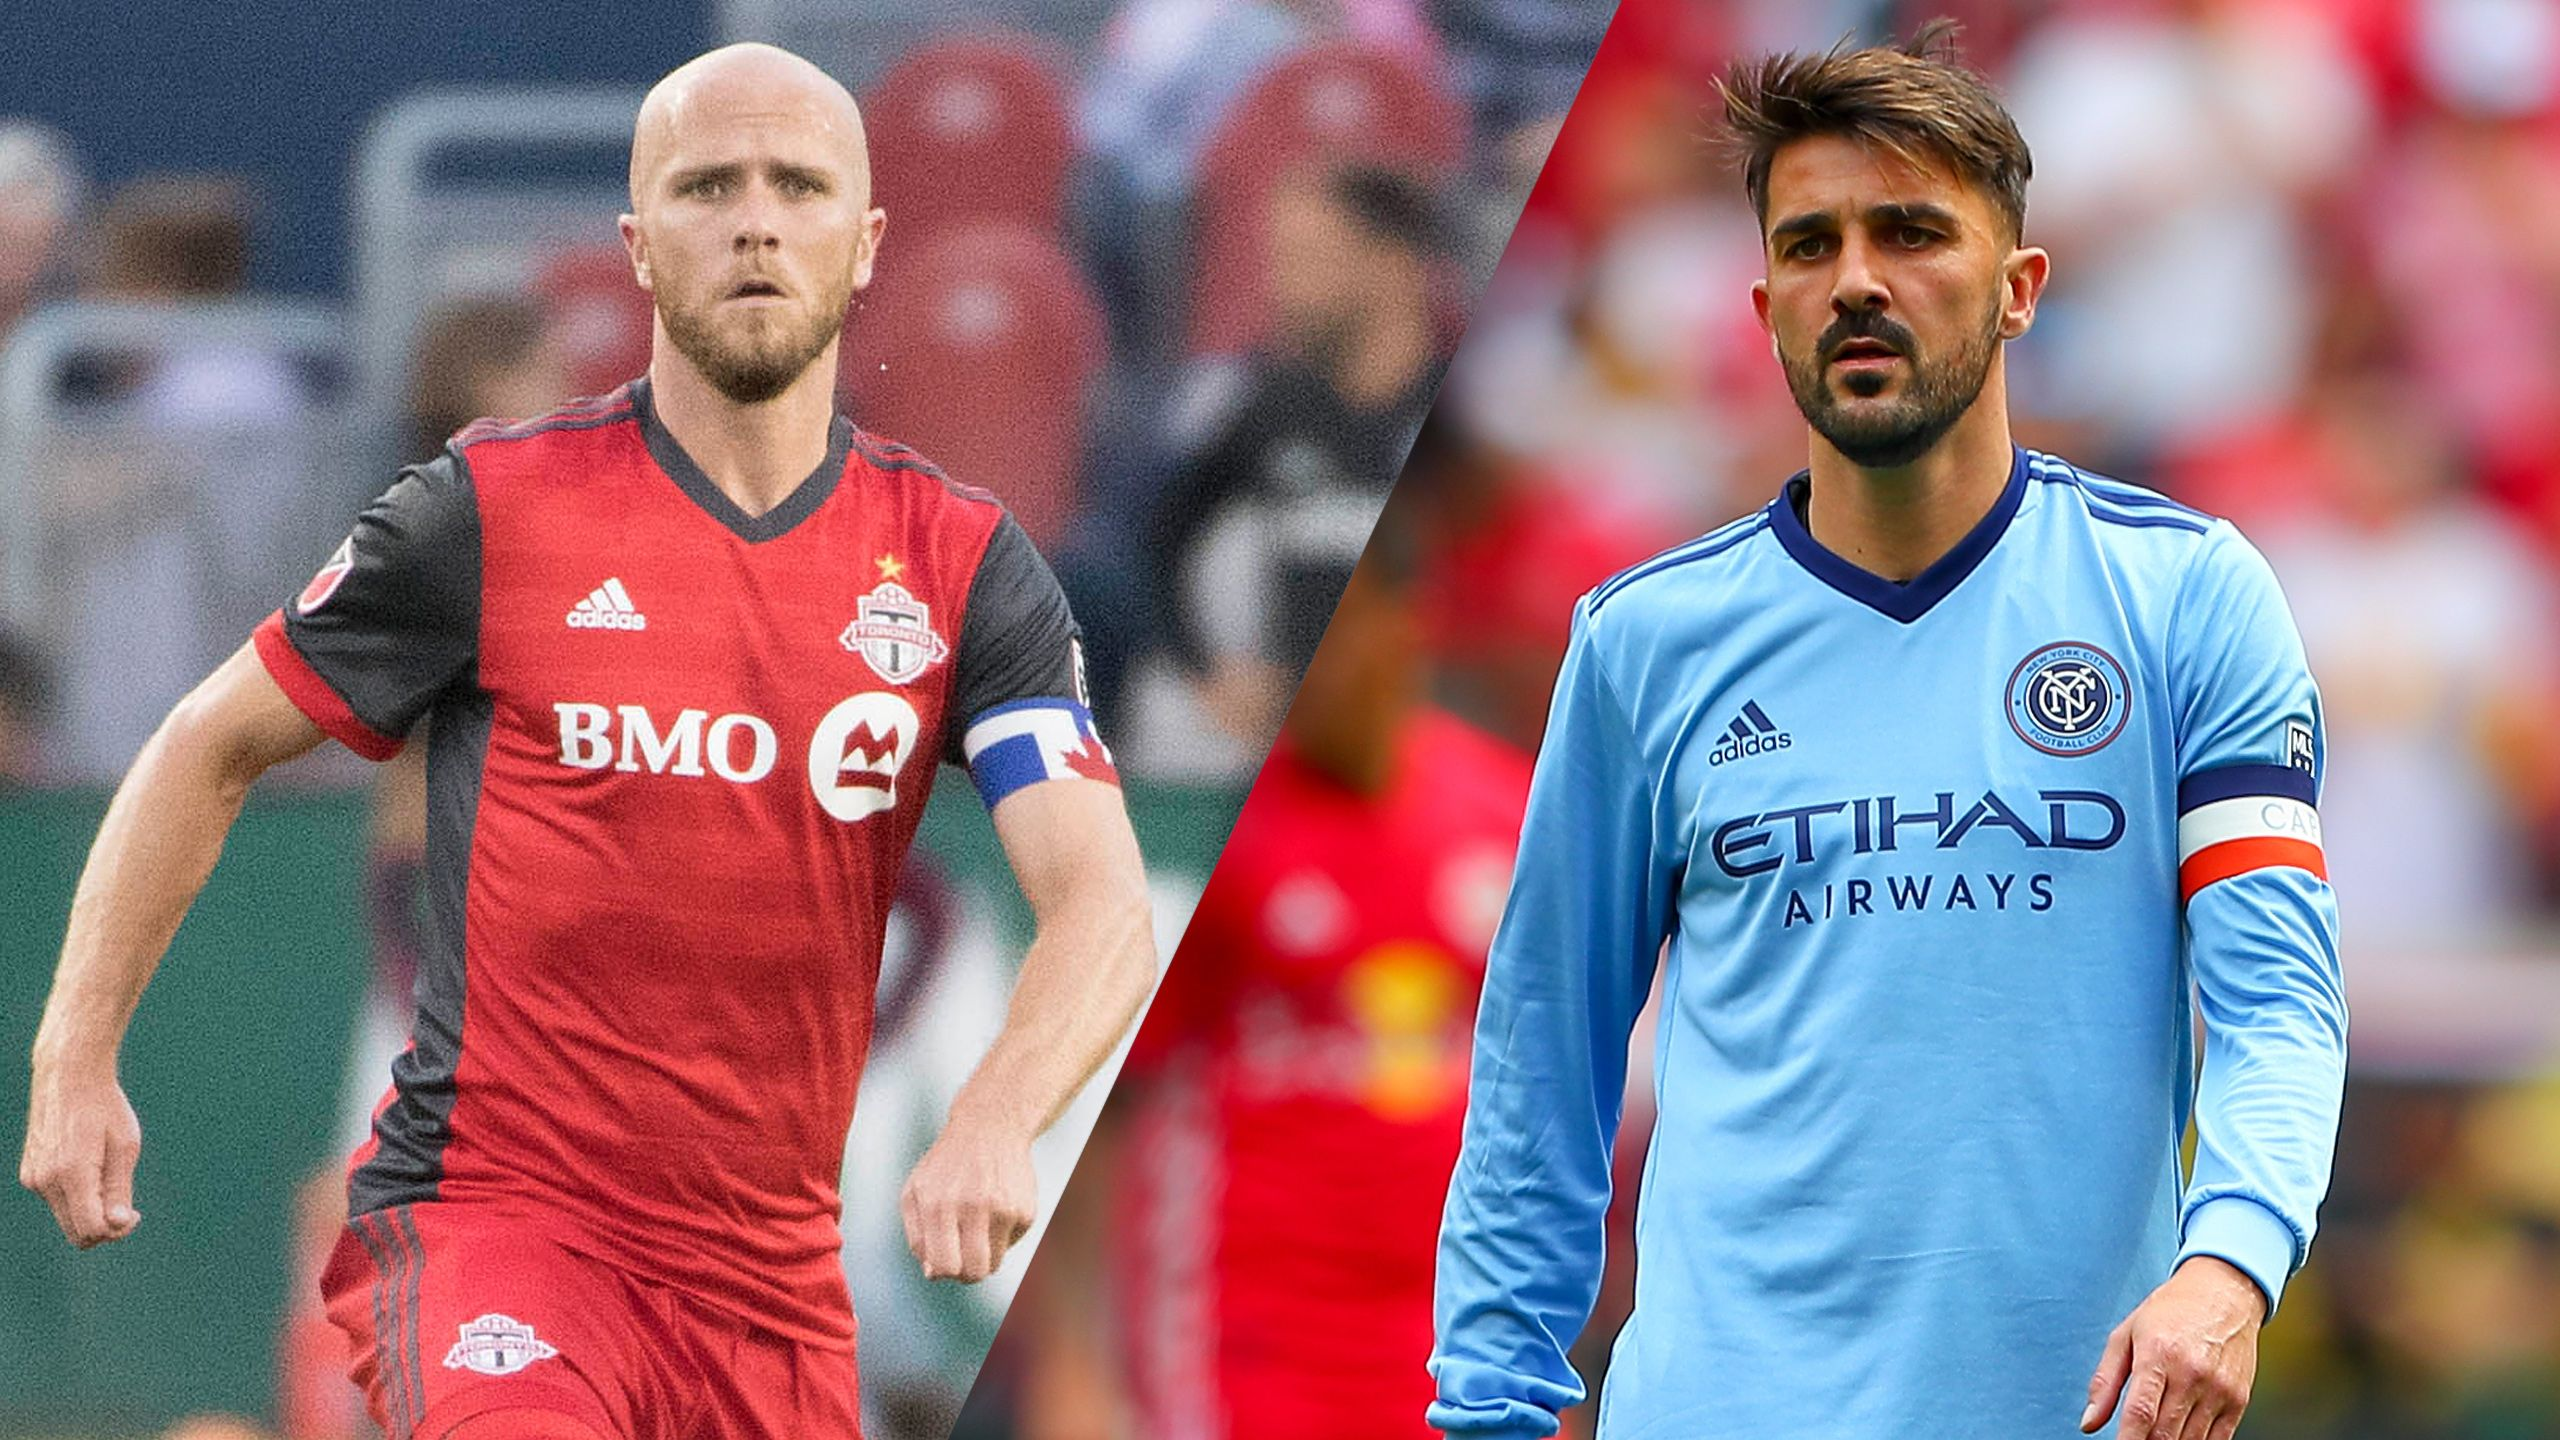 Toronto FC vs. New York City FC